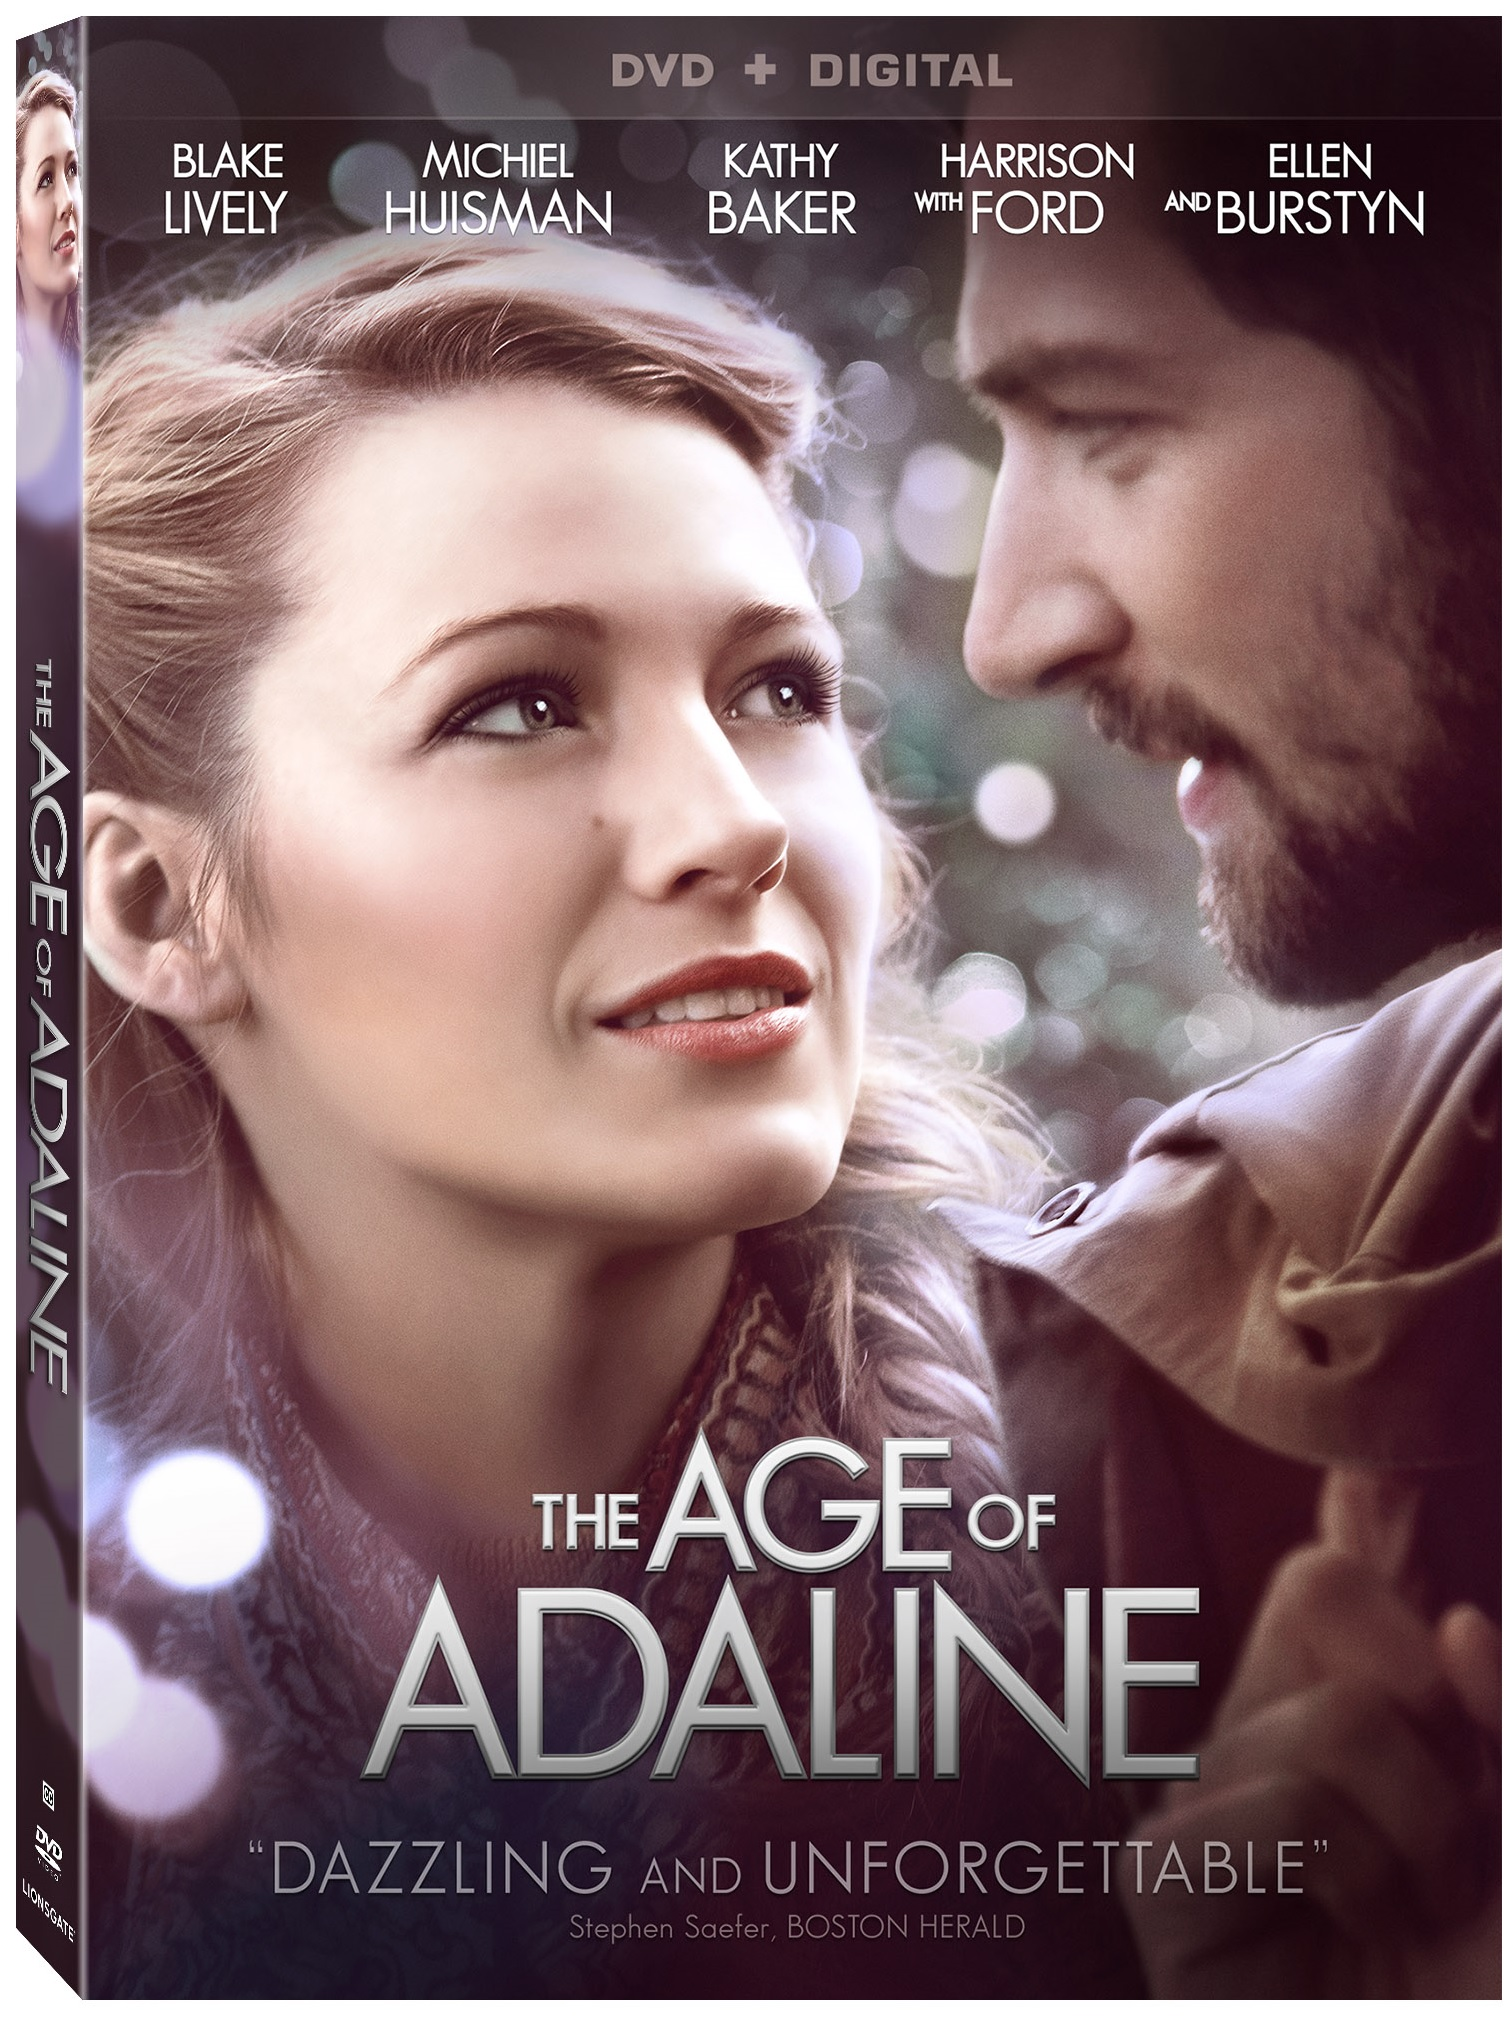 The Age of Adaline  DVD Review